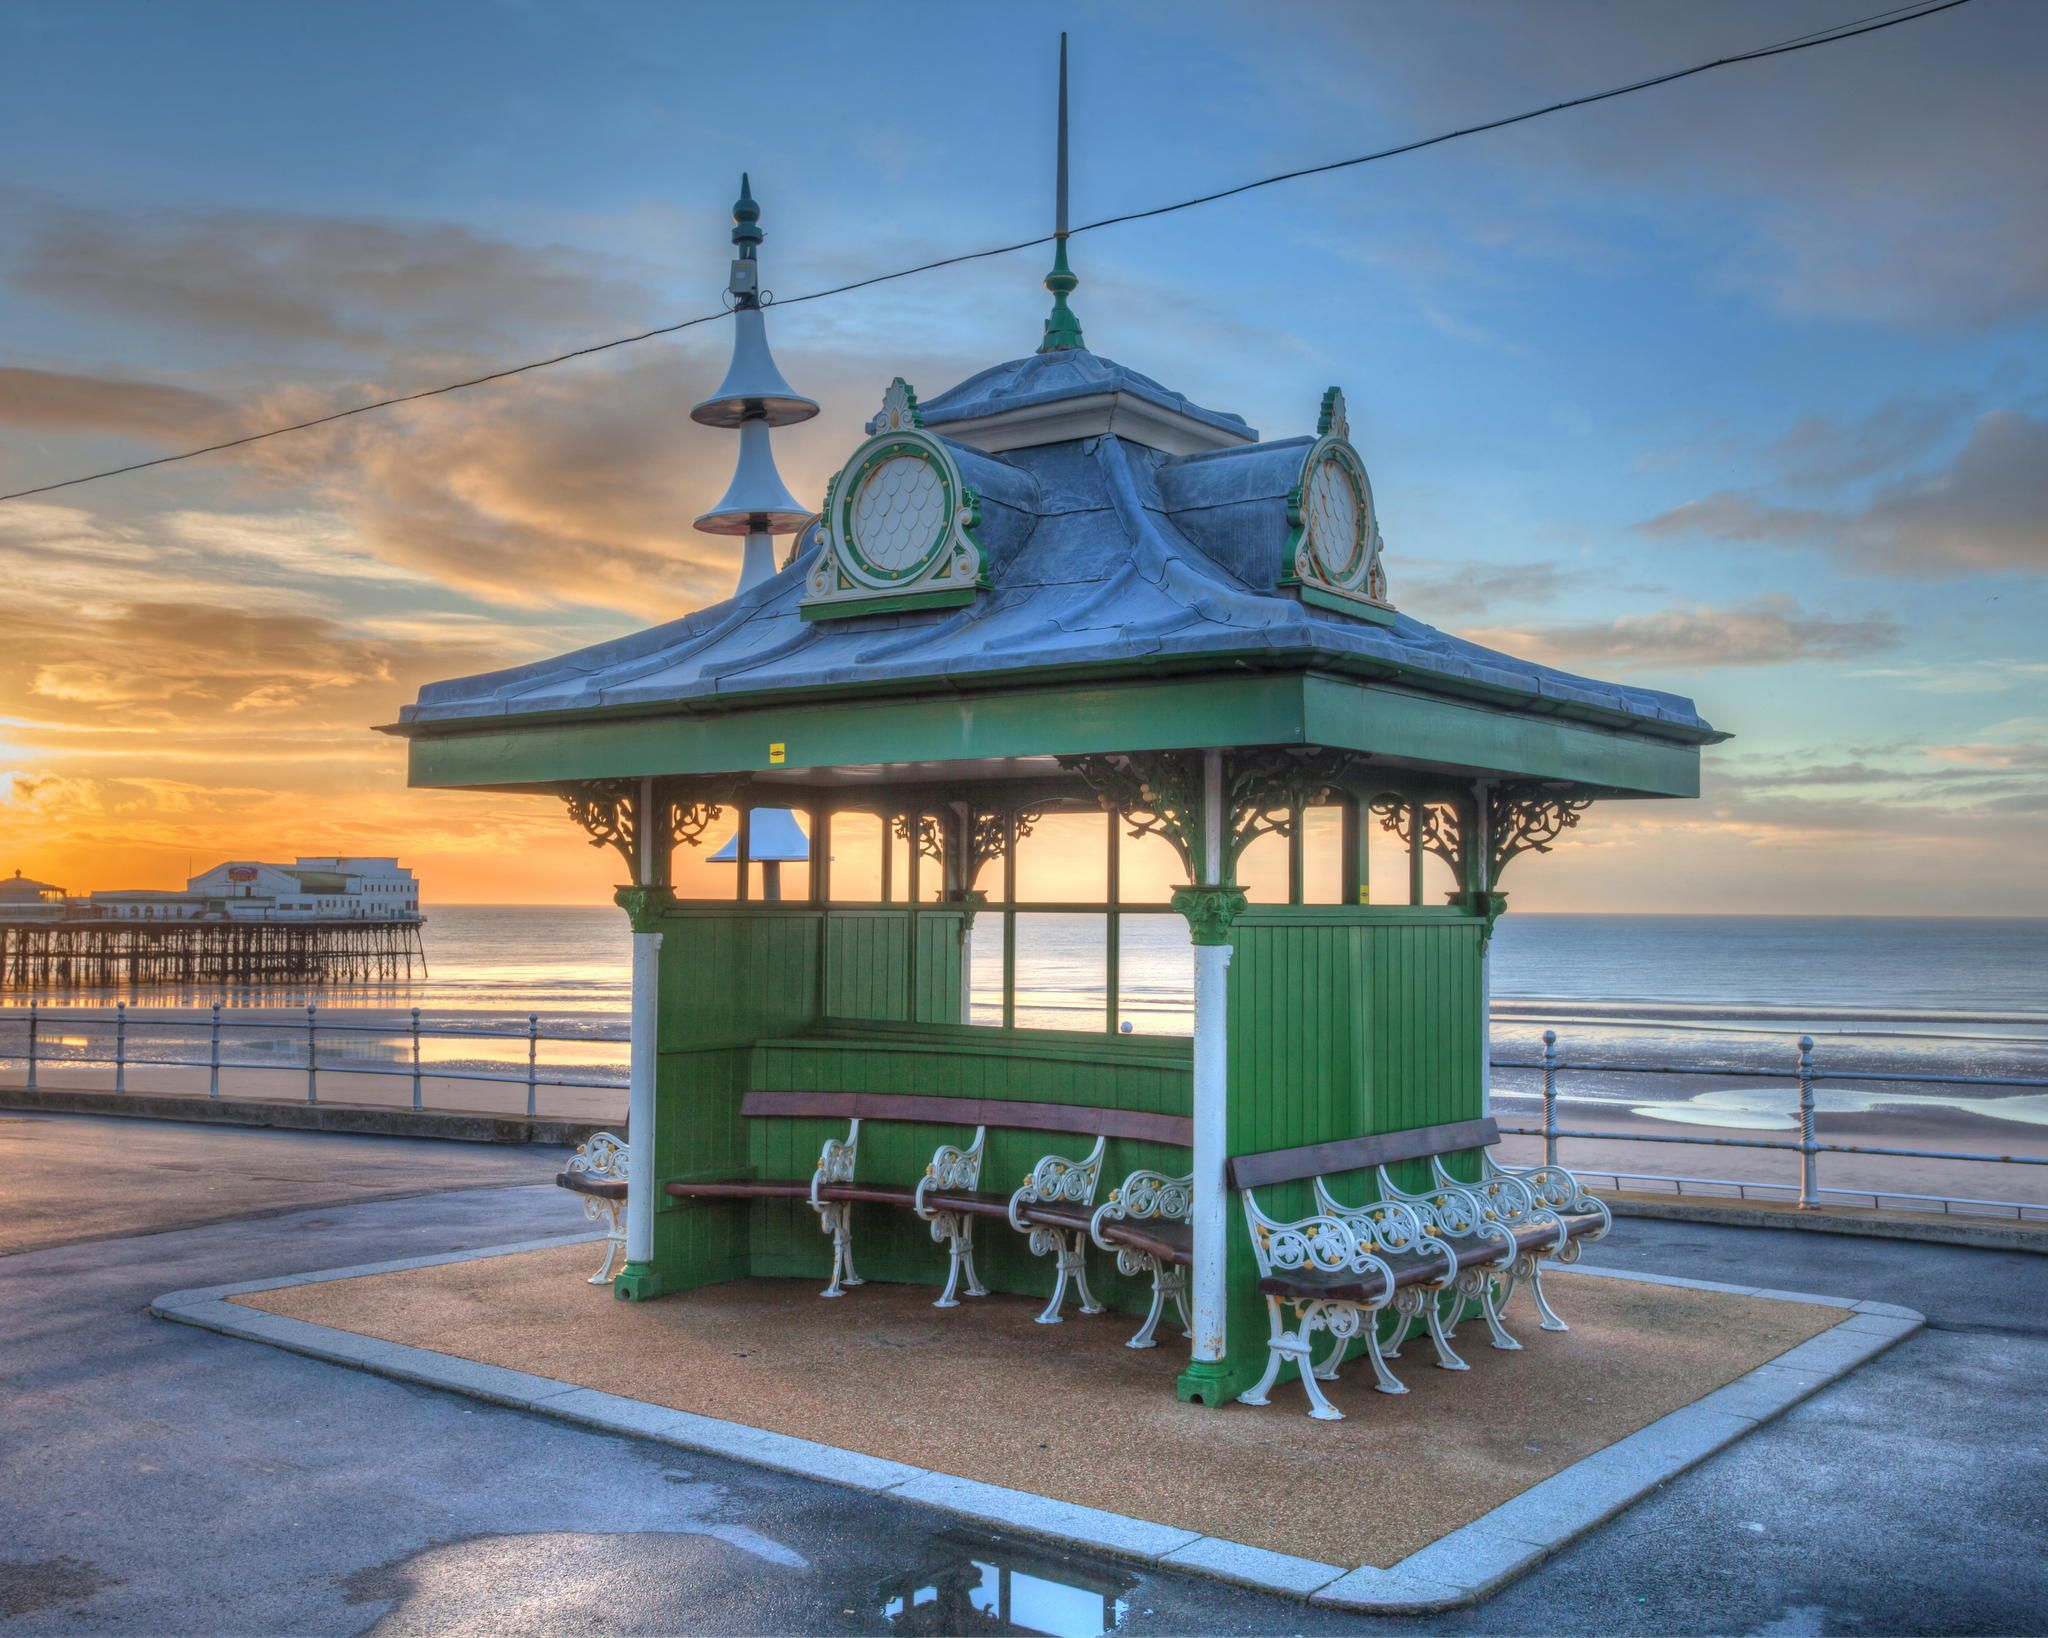 Photograph Blackpool Victorian Promenade Hut. by alex west on 500px